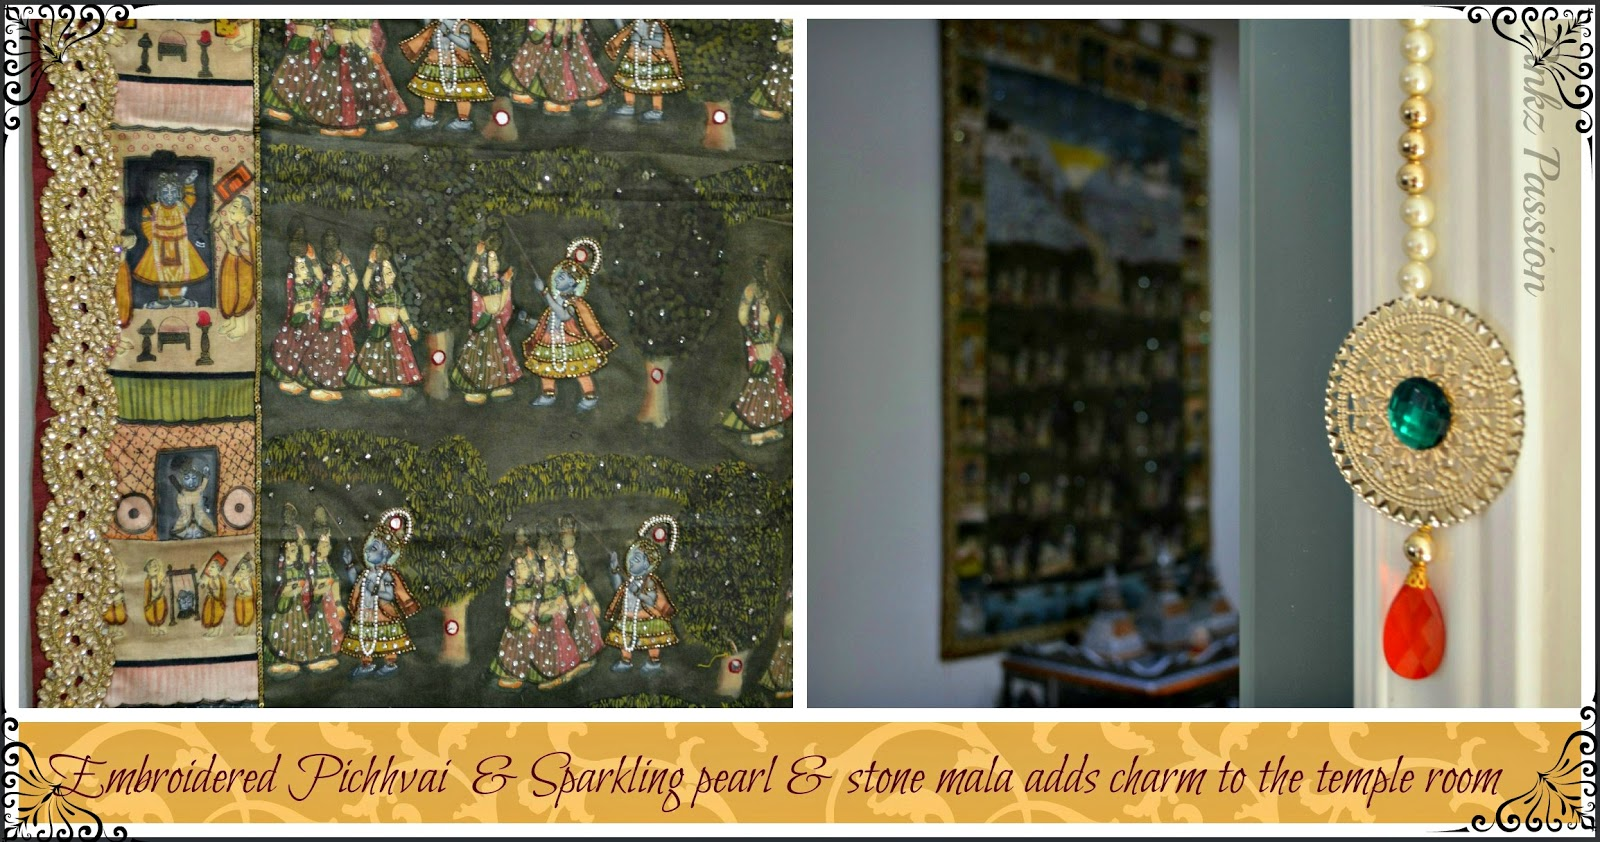 Pinkz Passion : A Zone of Serenity ( Pooja Room)